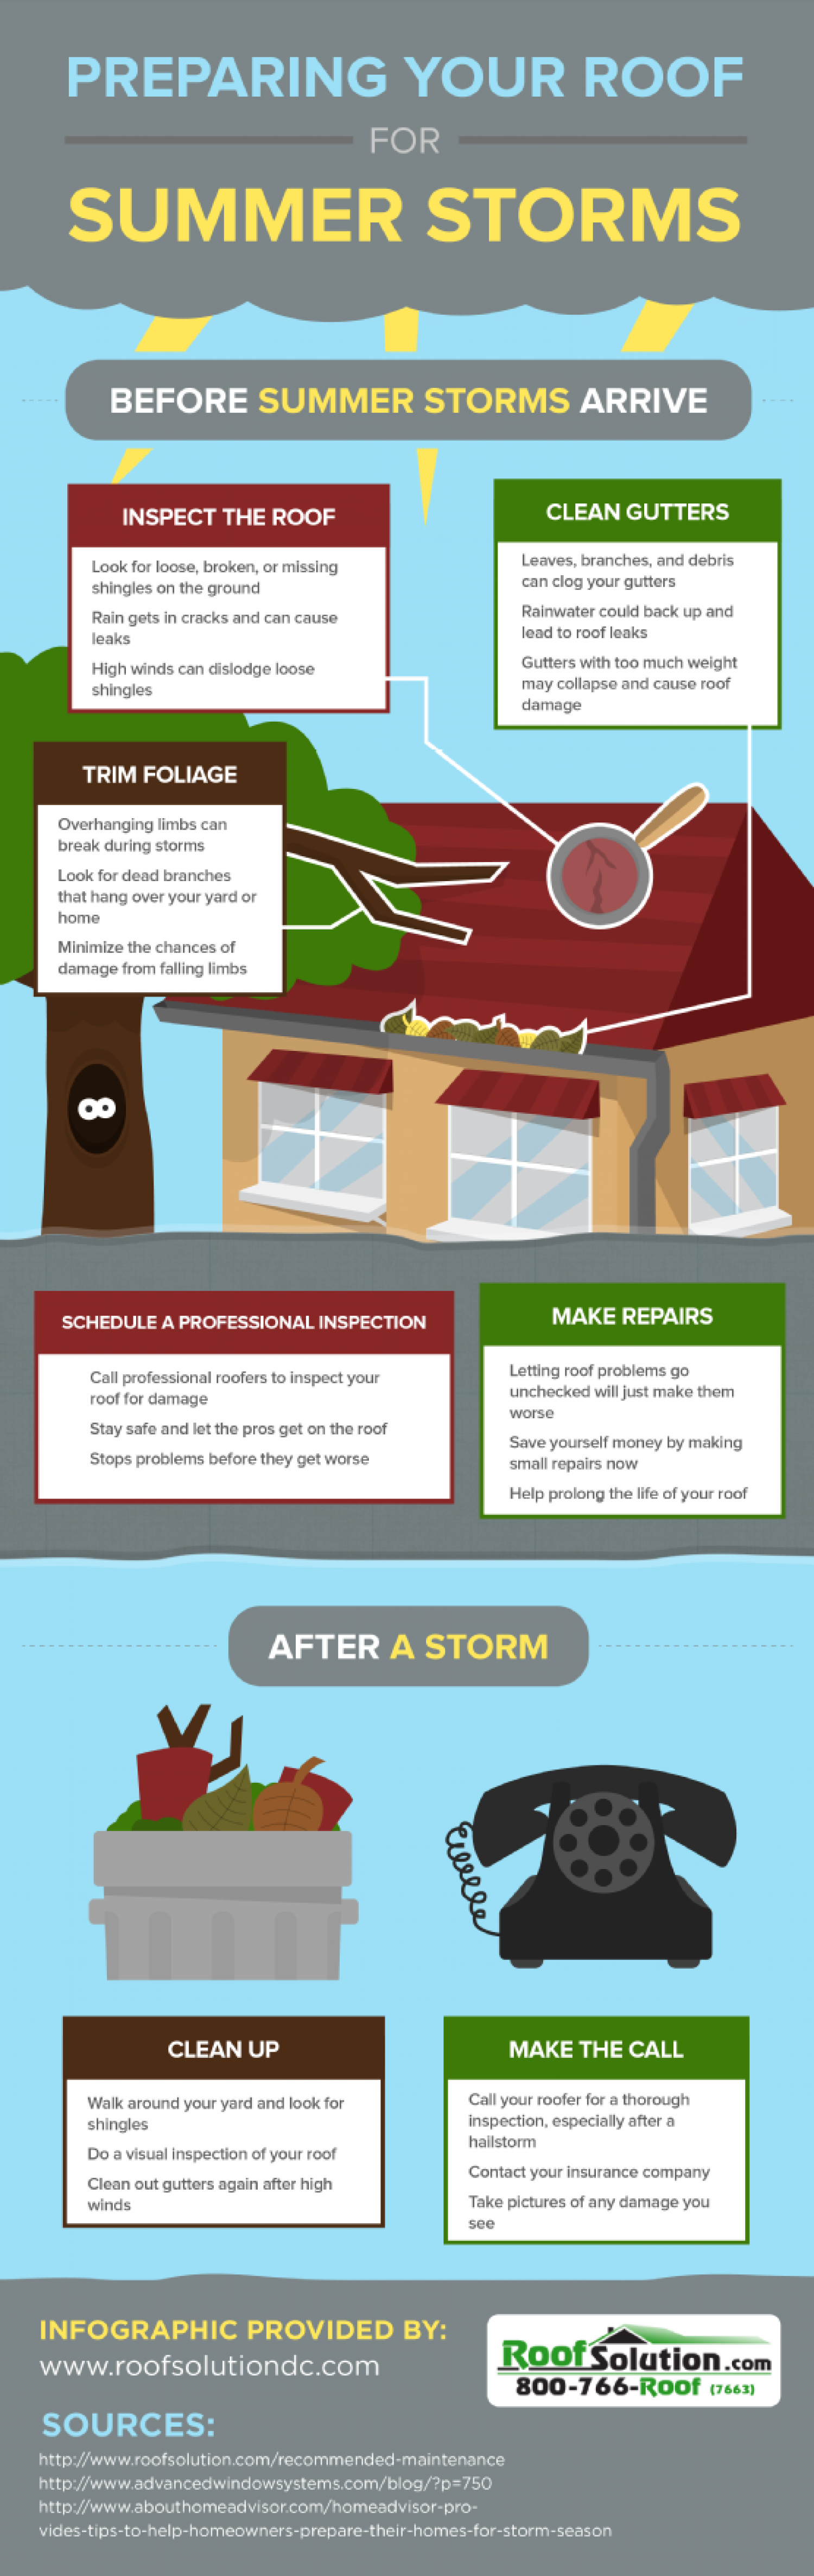 Preparing Your Roof for Summer Storms  Infographic